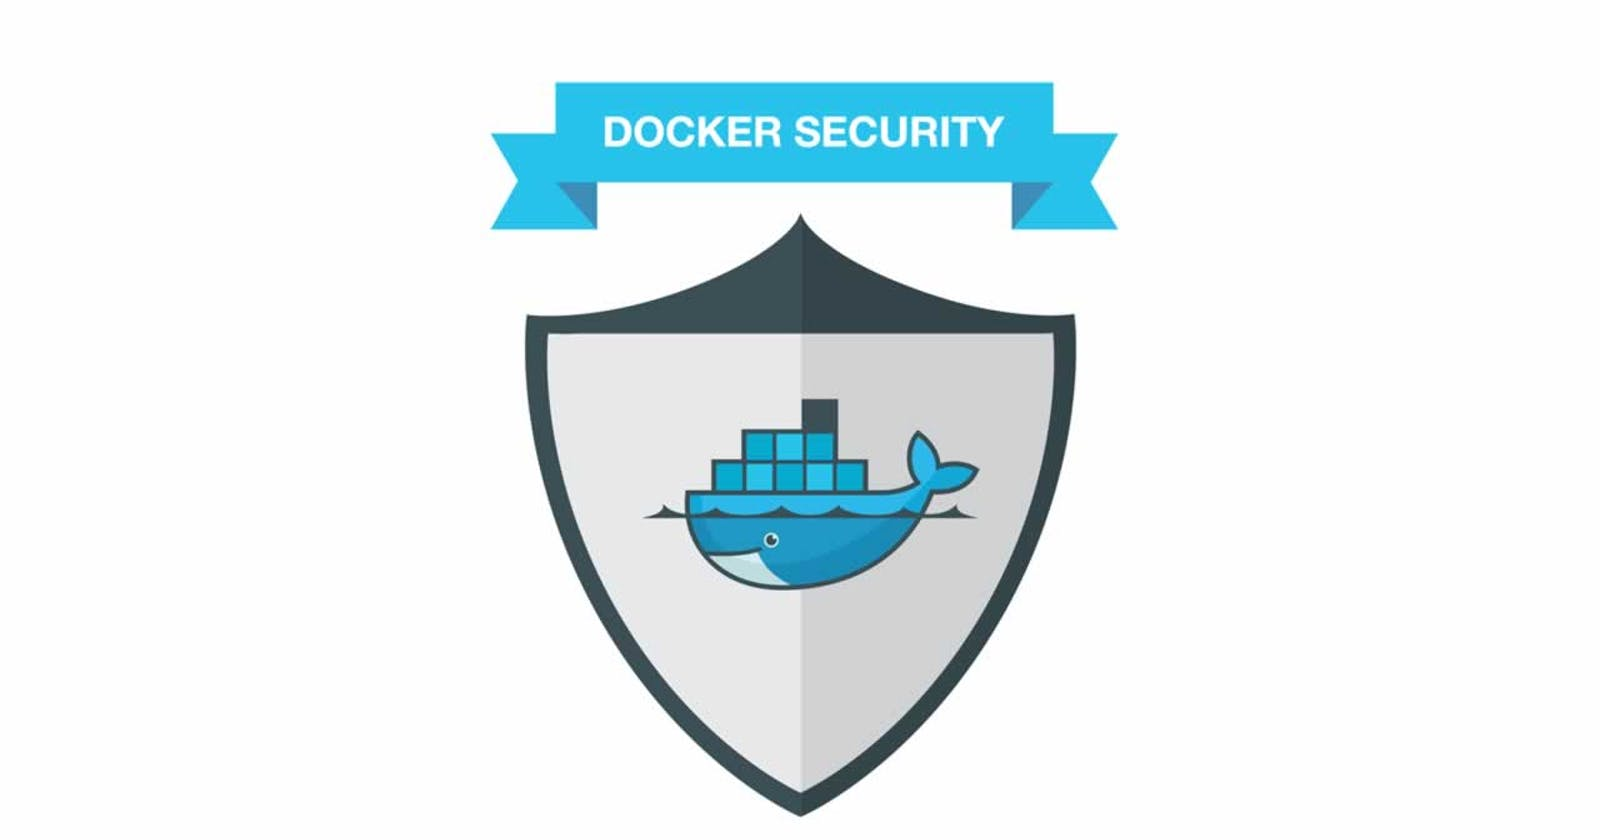 Docker Security - What I Learned From Creating My First Full-Stack App After University